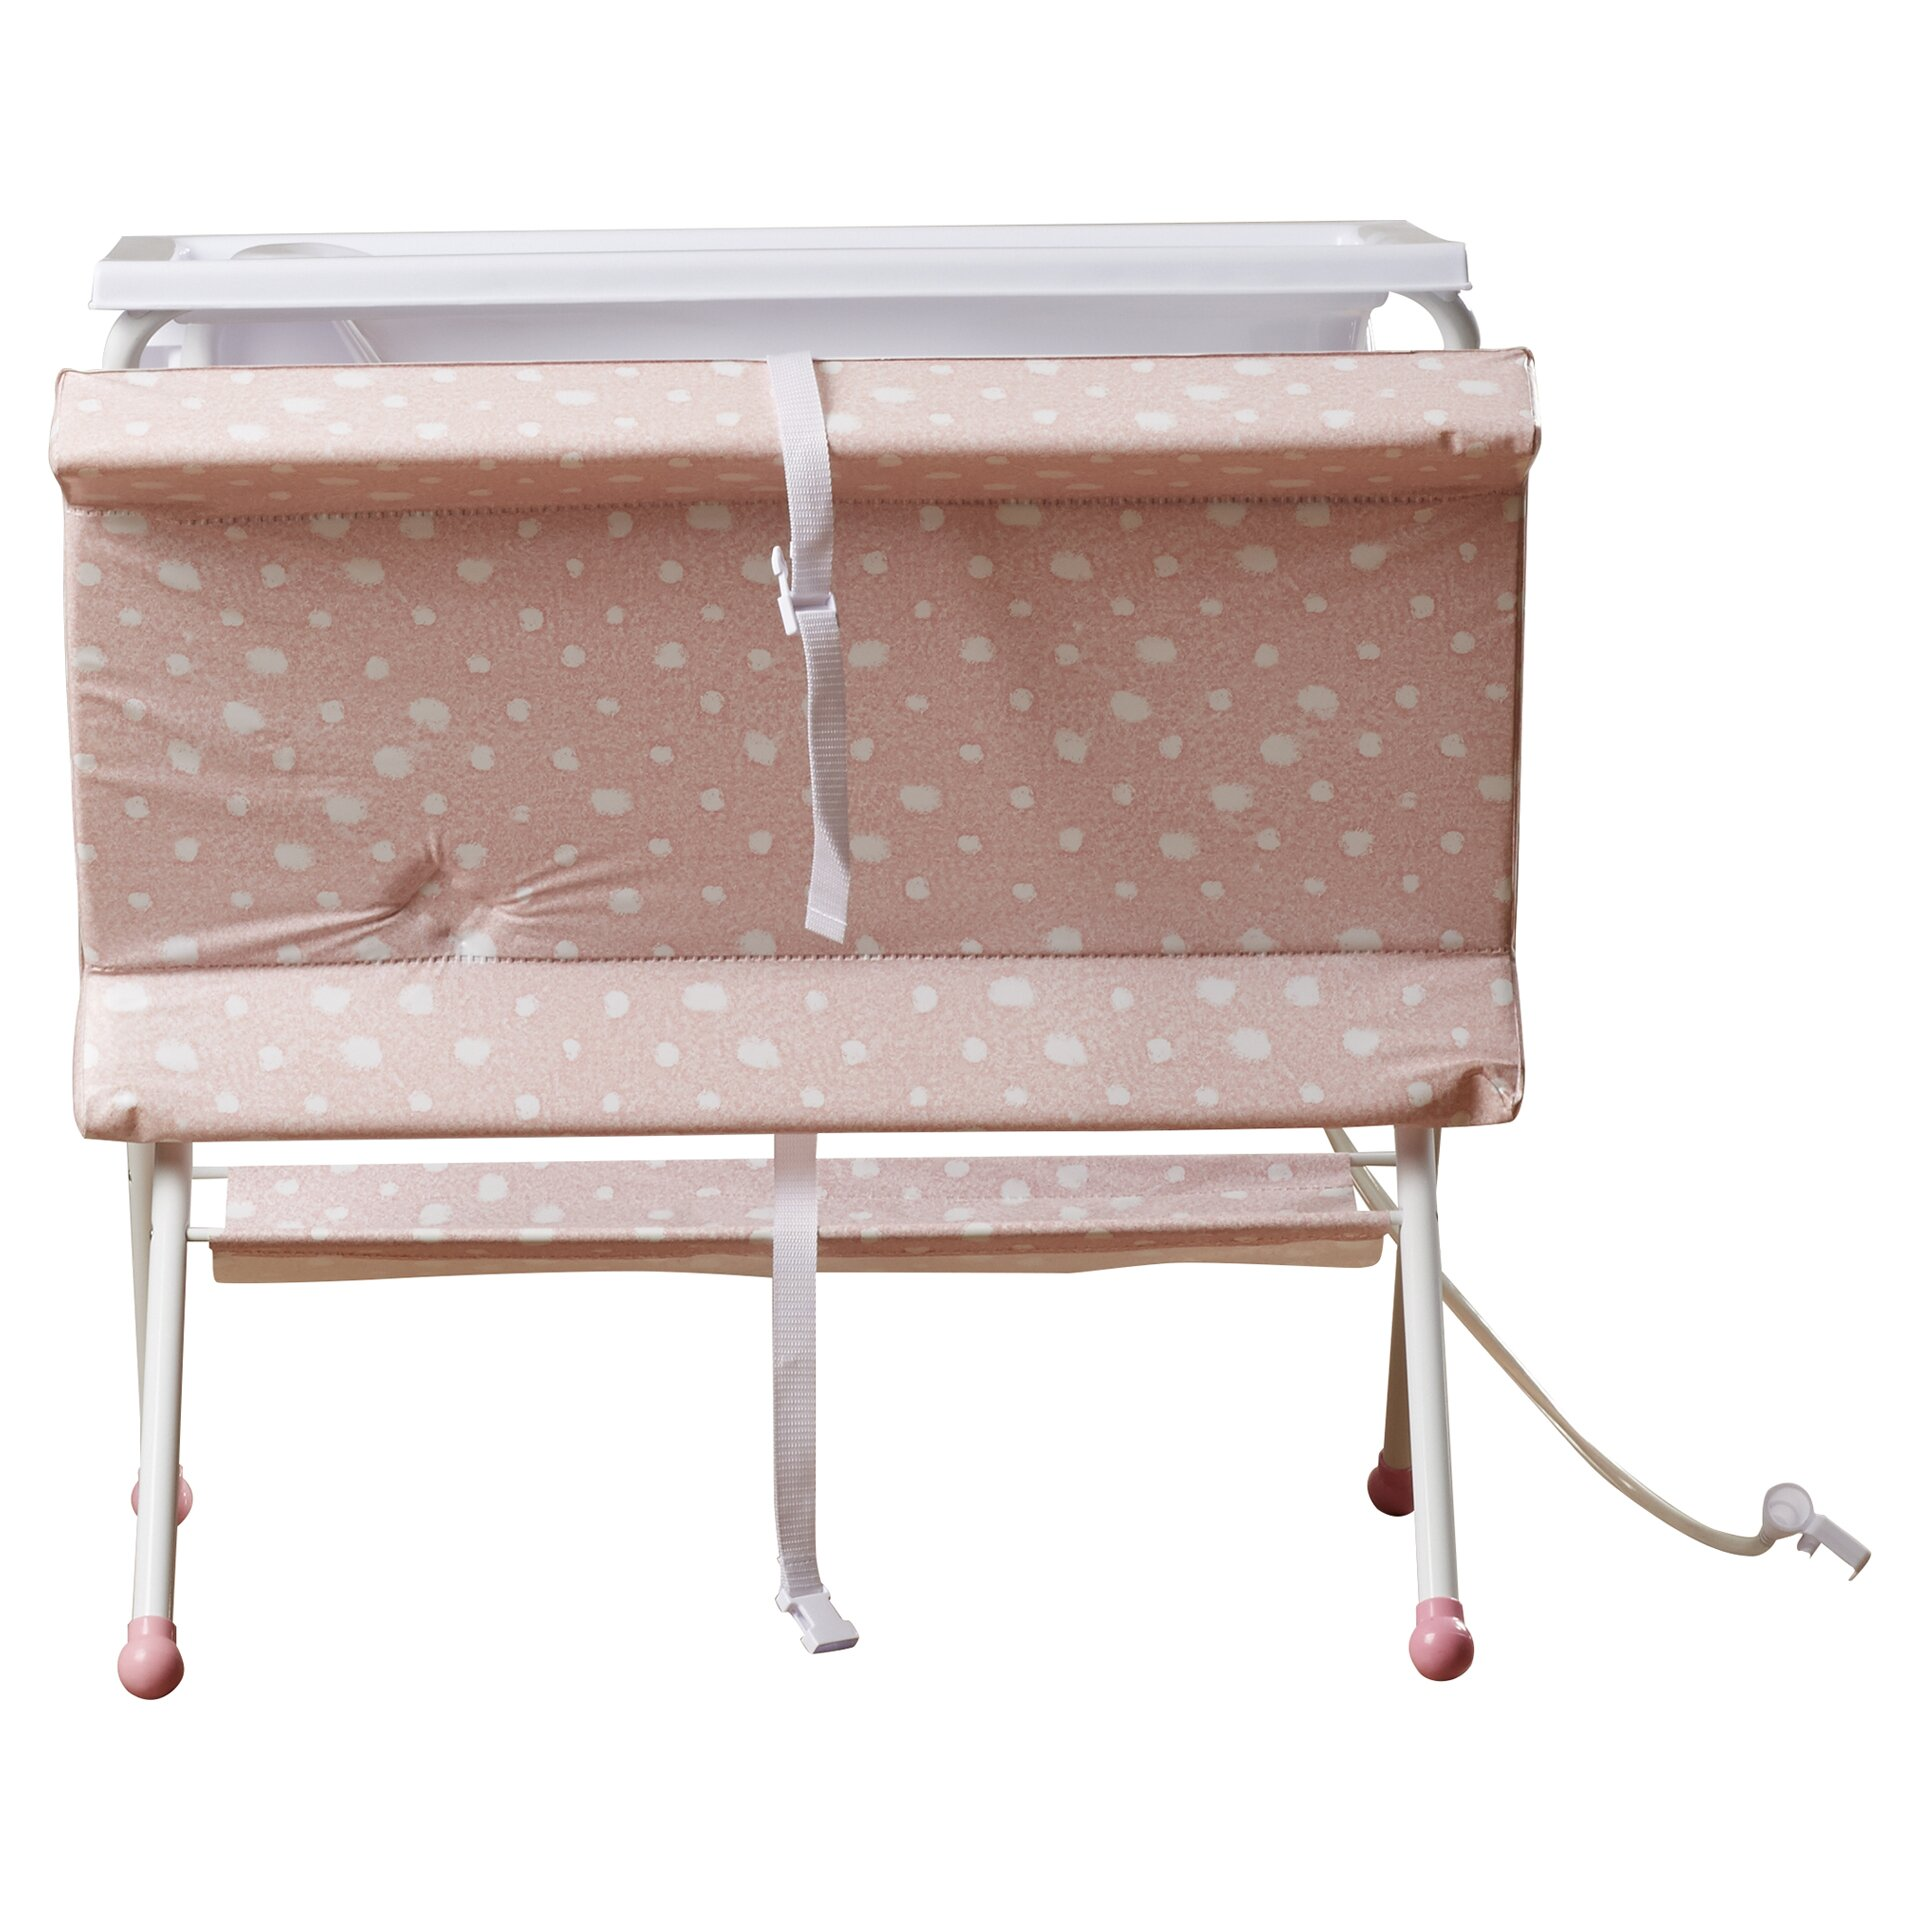 Baby Diego Bathinette Baby Bath Changing Table Combo